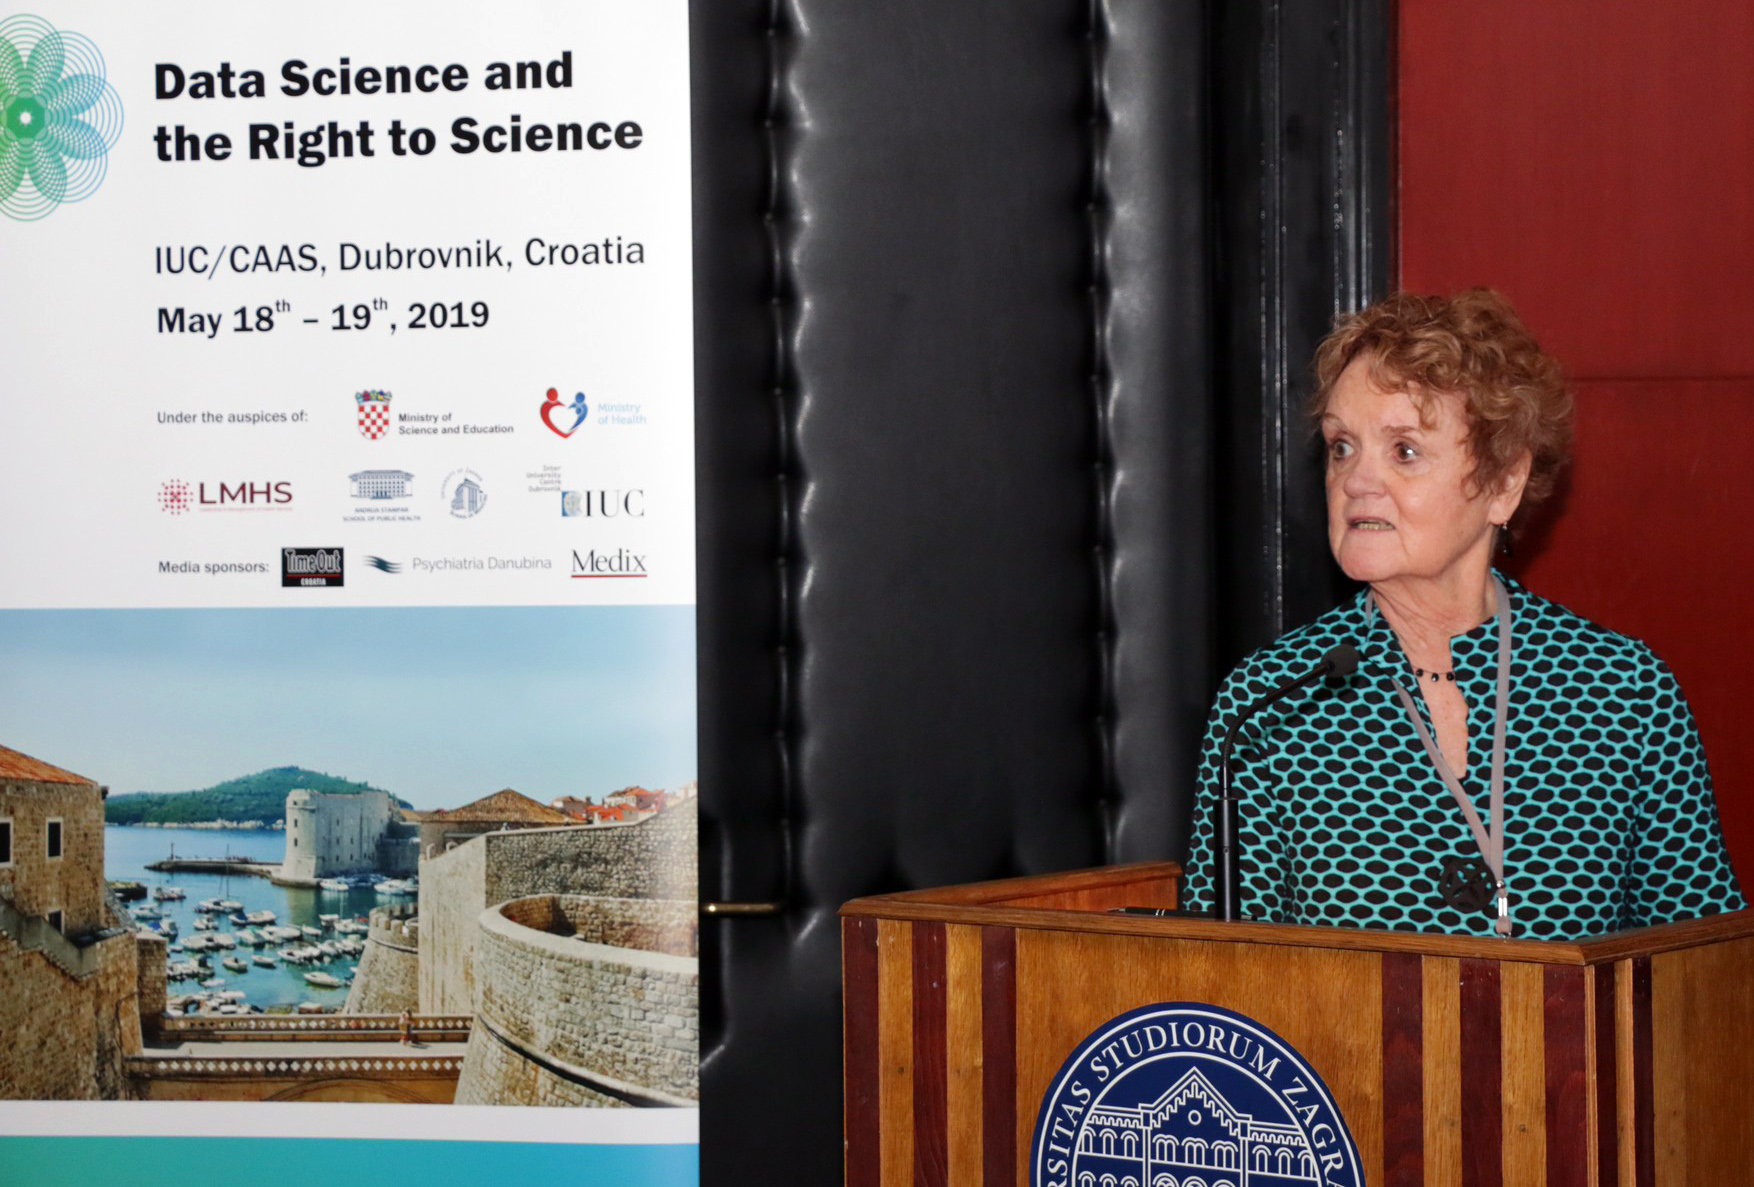 Val speaks from the podium at the Right to Science Conference in Dubrovnik